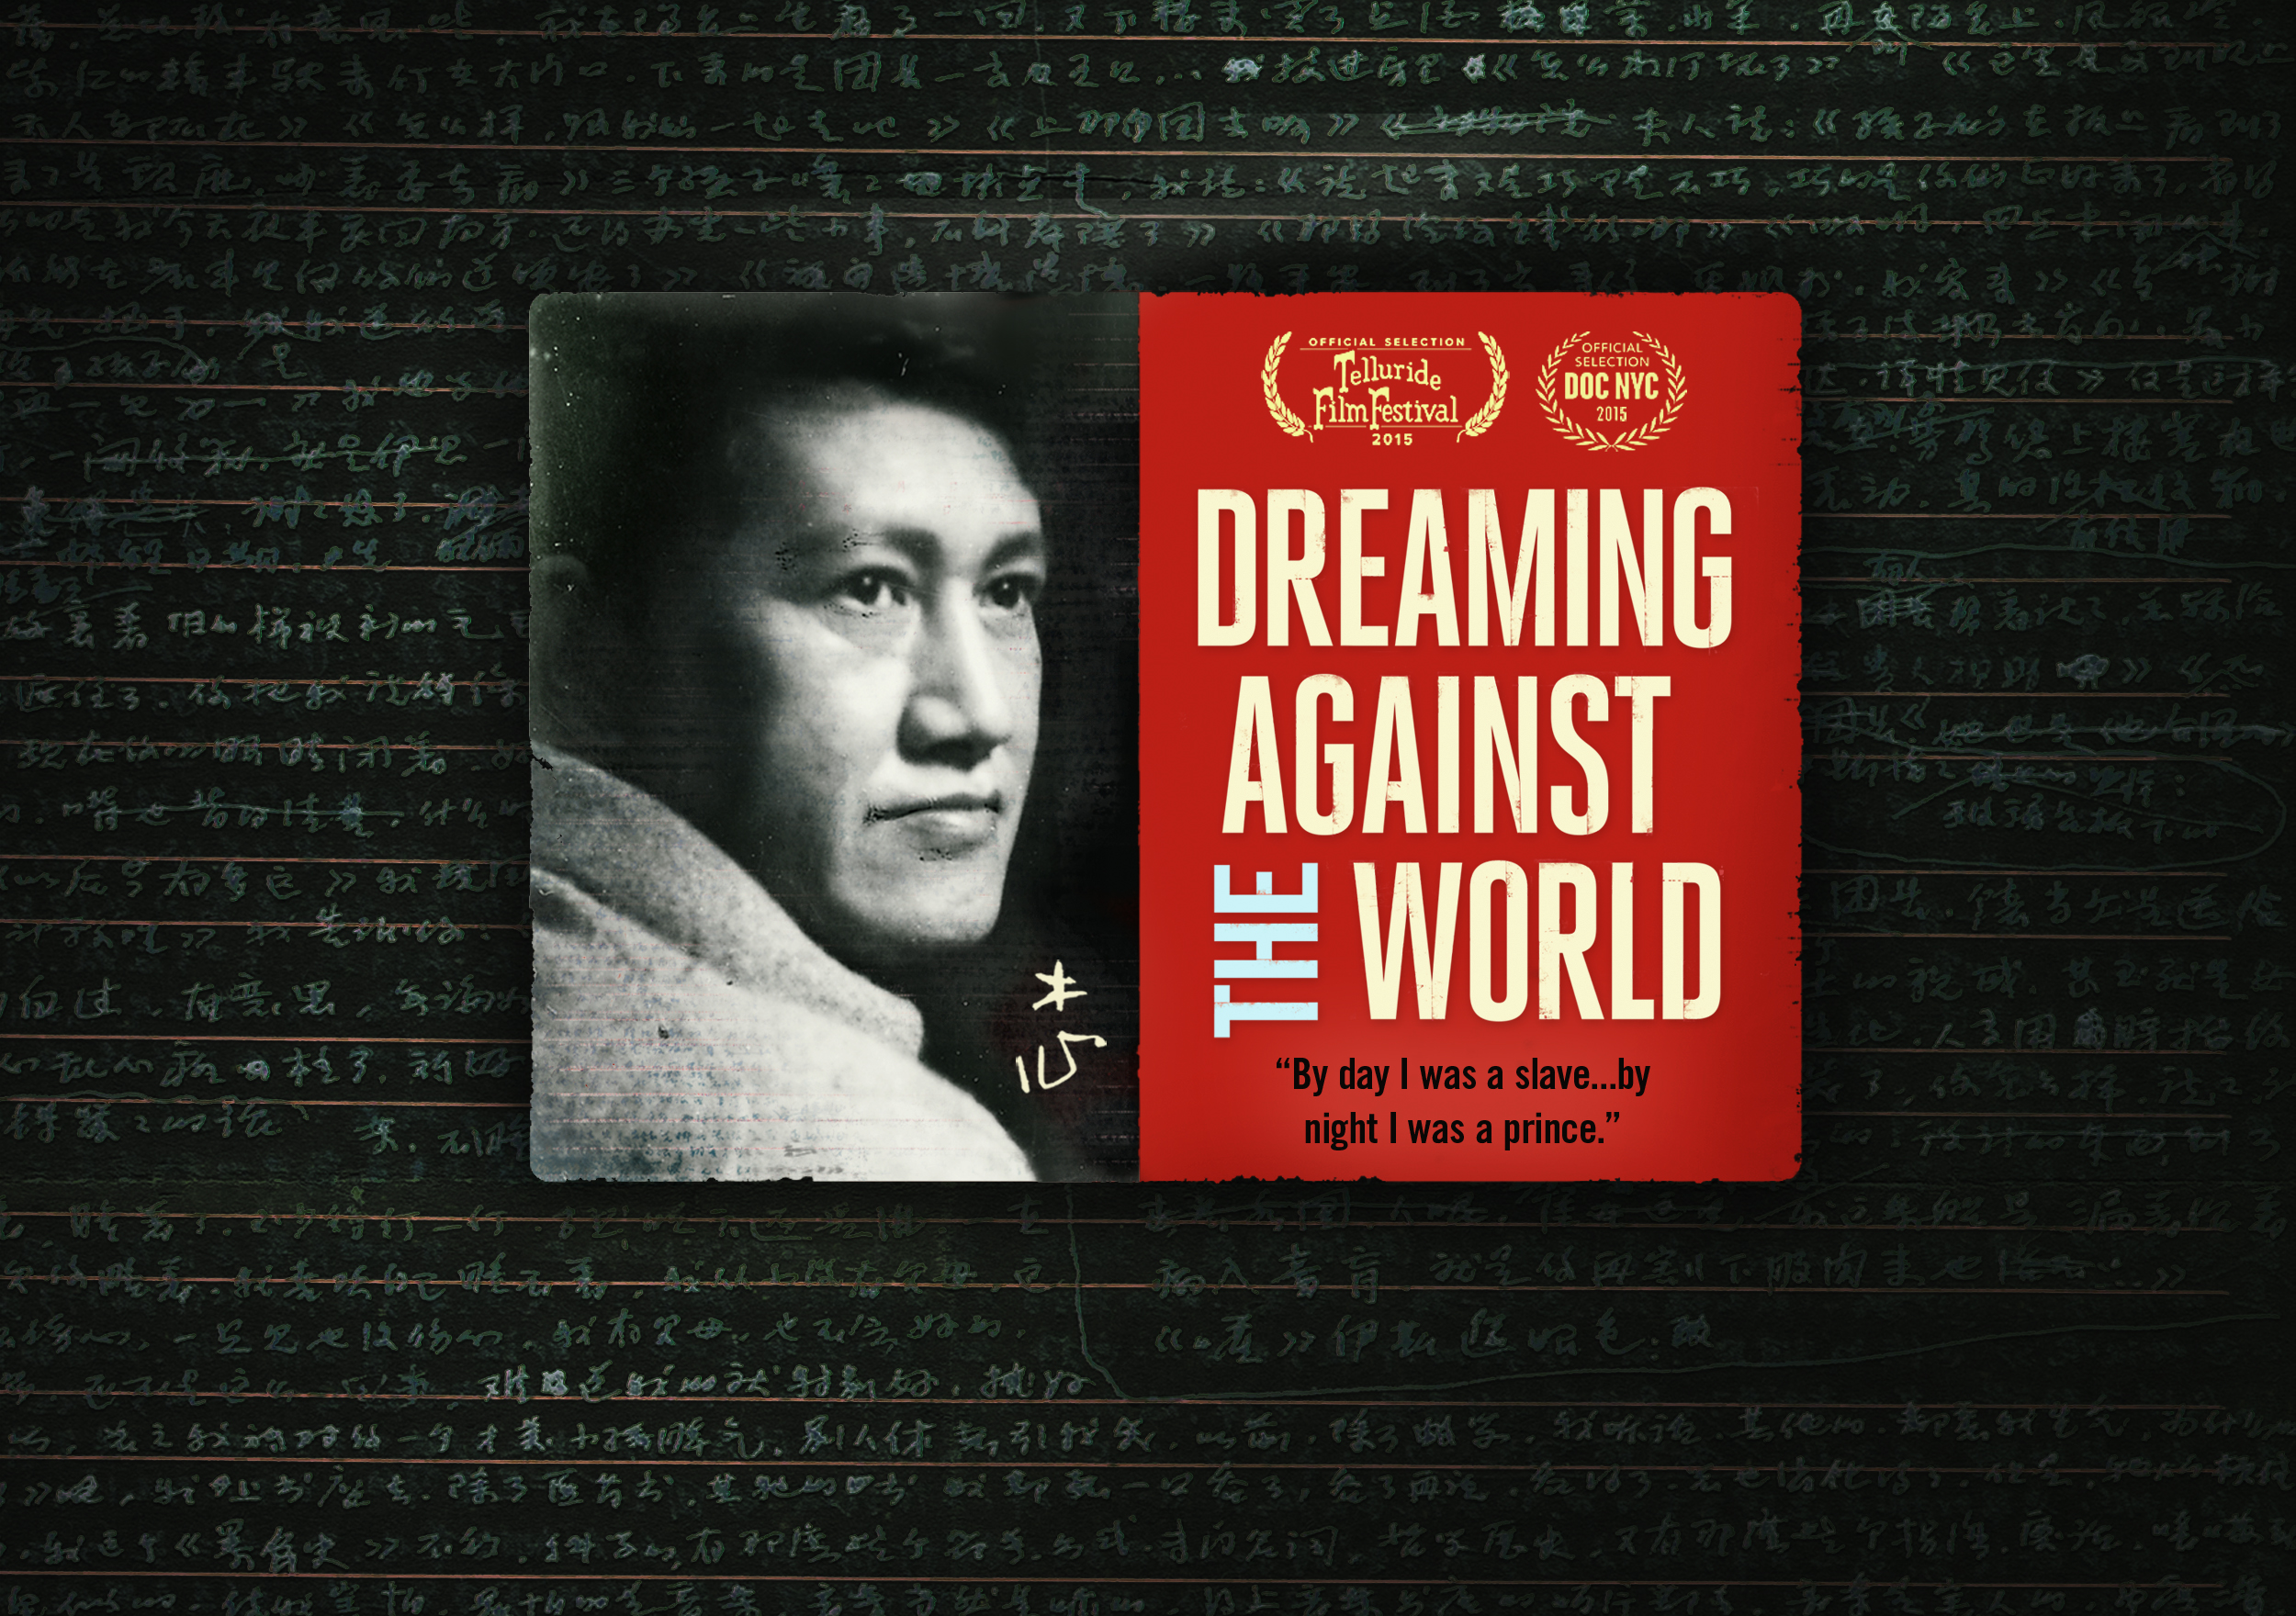 Website for the documentary film, Dreaming Against the World:  datw.info.